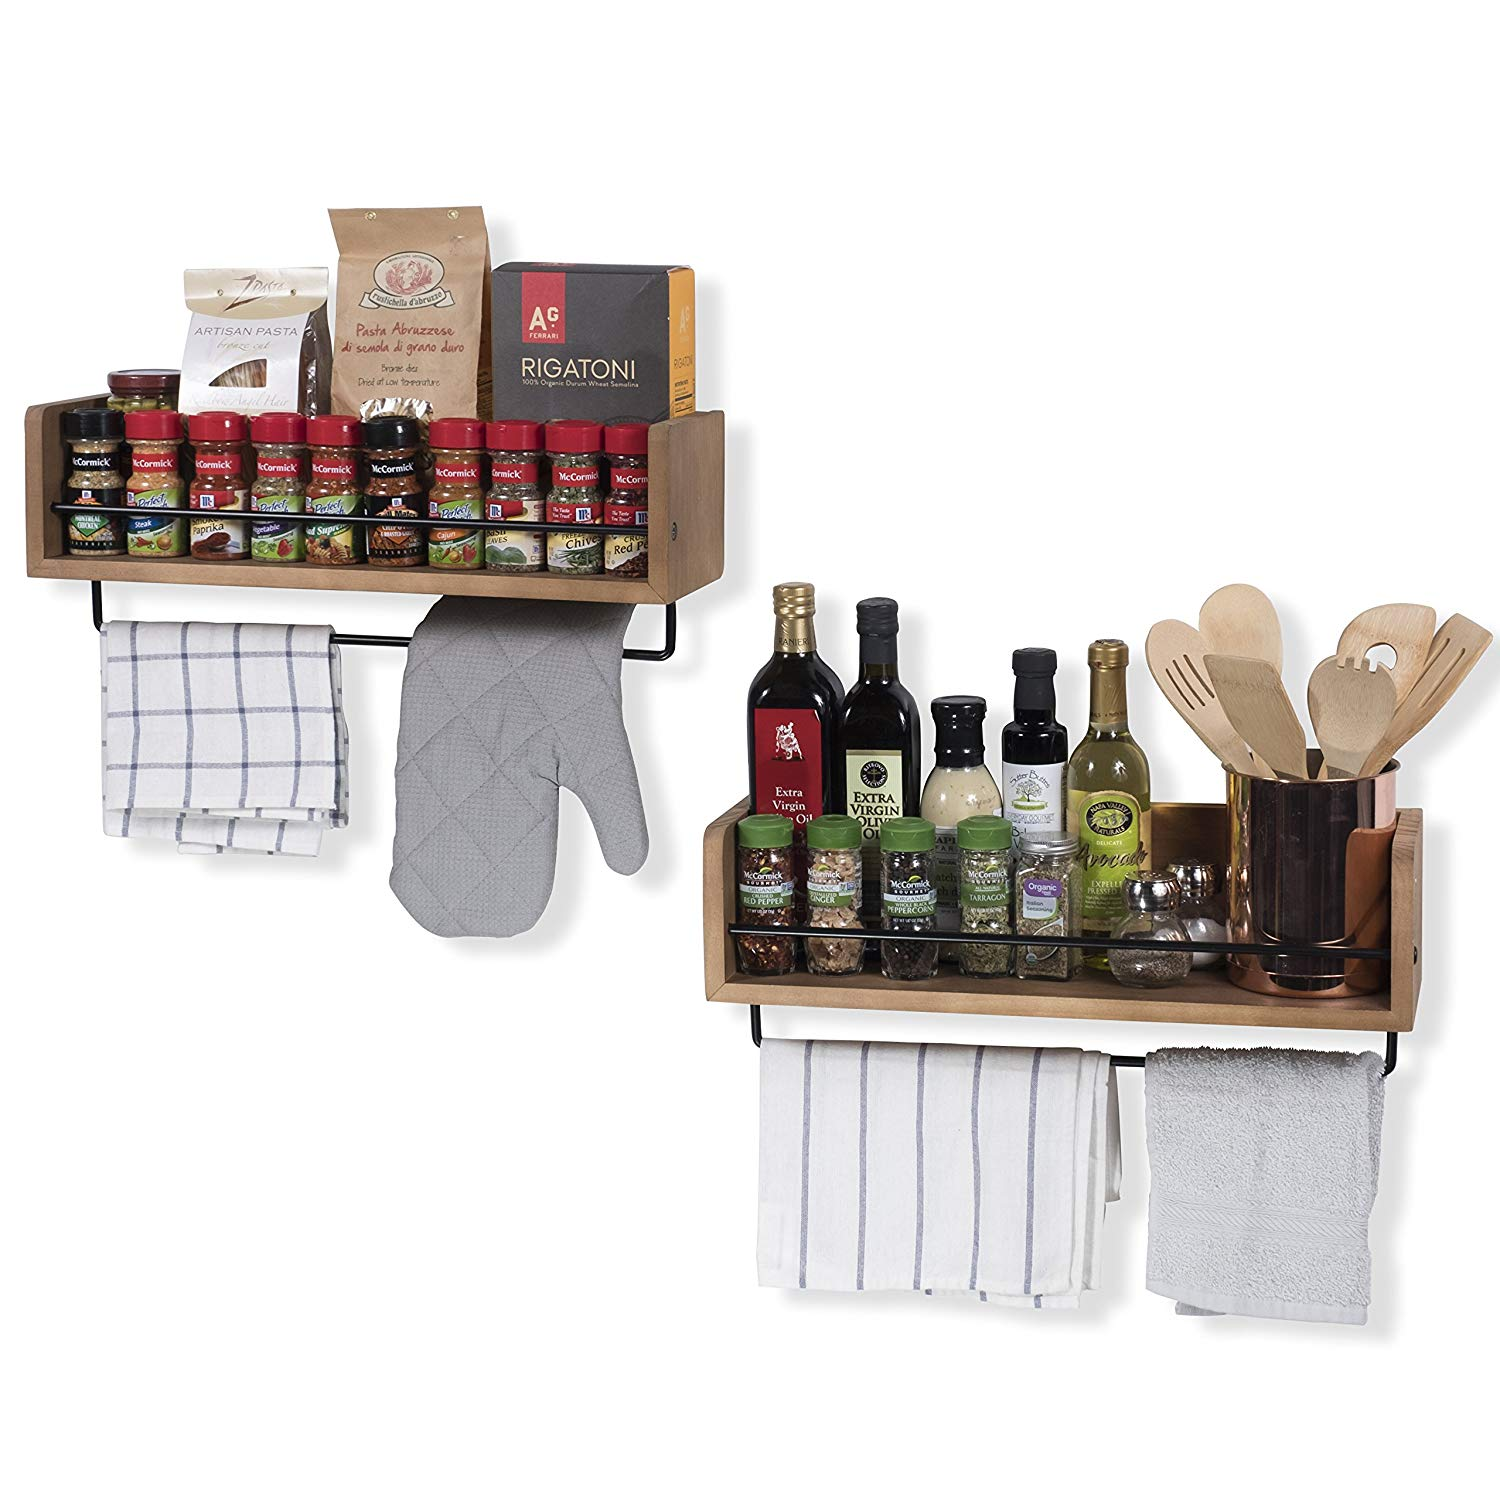 Kitchen Wood Wall Shelf with Metal Rail Multi Use Can Be Used As a Spice Rack